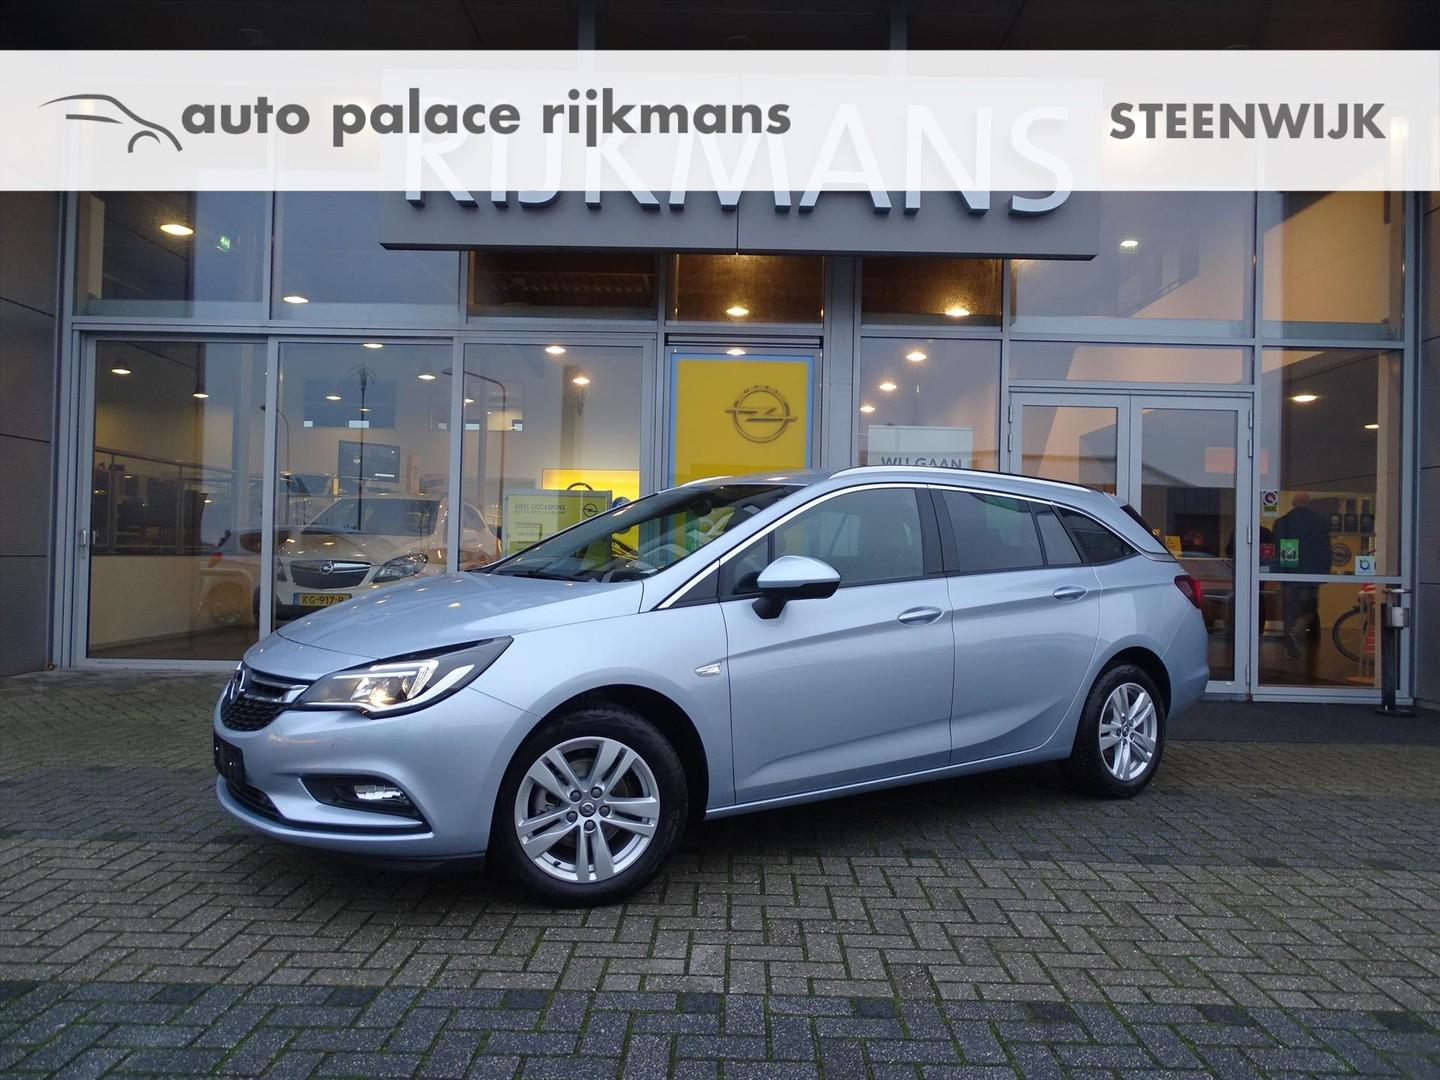 Opel Astra Online edition 1.0t 105 pk - navi - lmv - edition pack